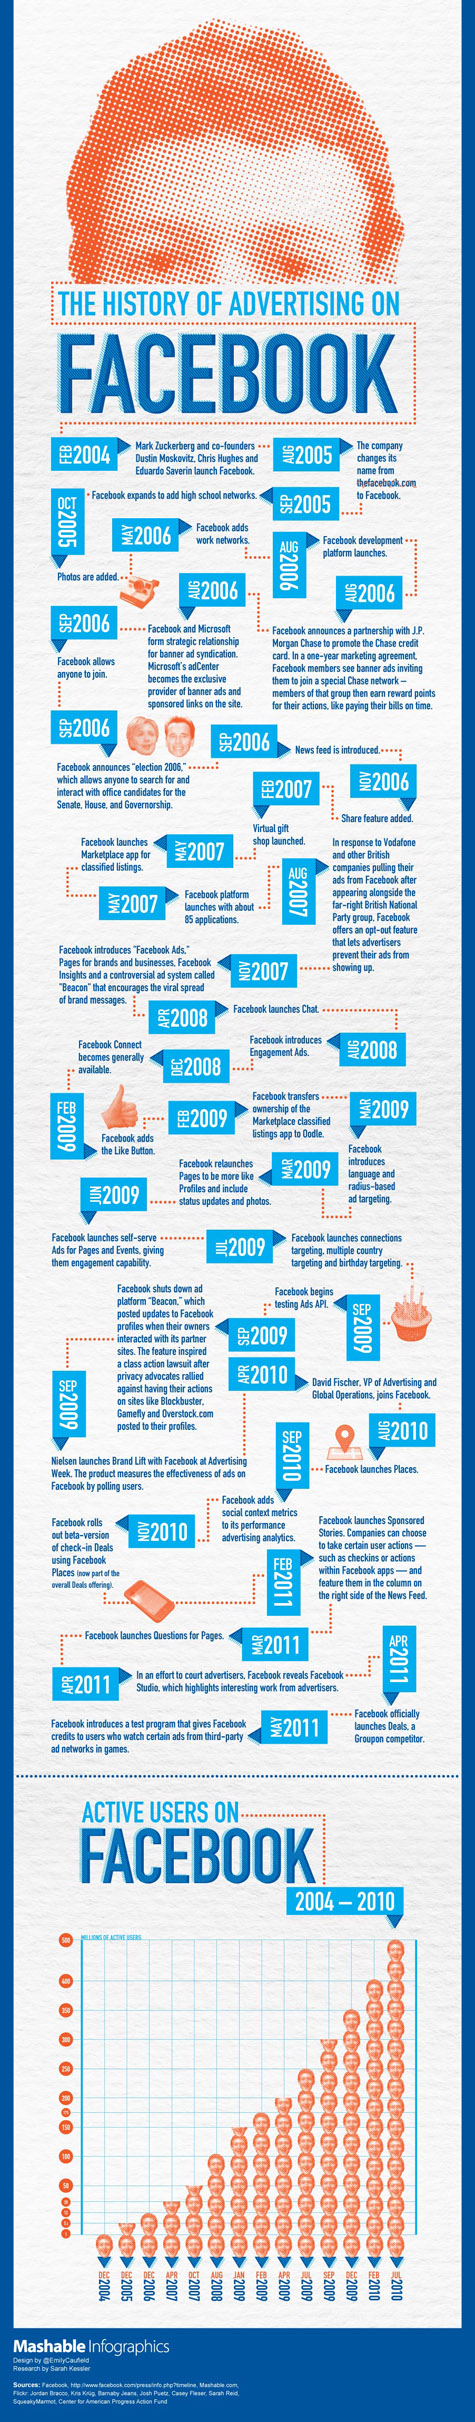 Infographic: The Past, Present And Promise Of Facebook Advertising